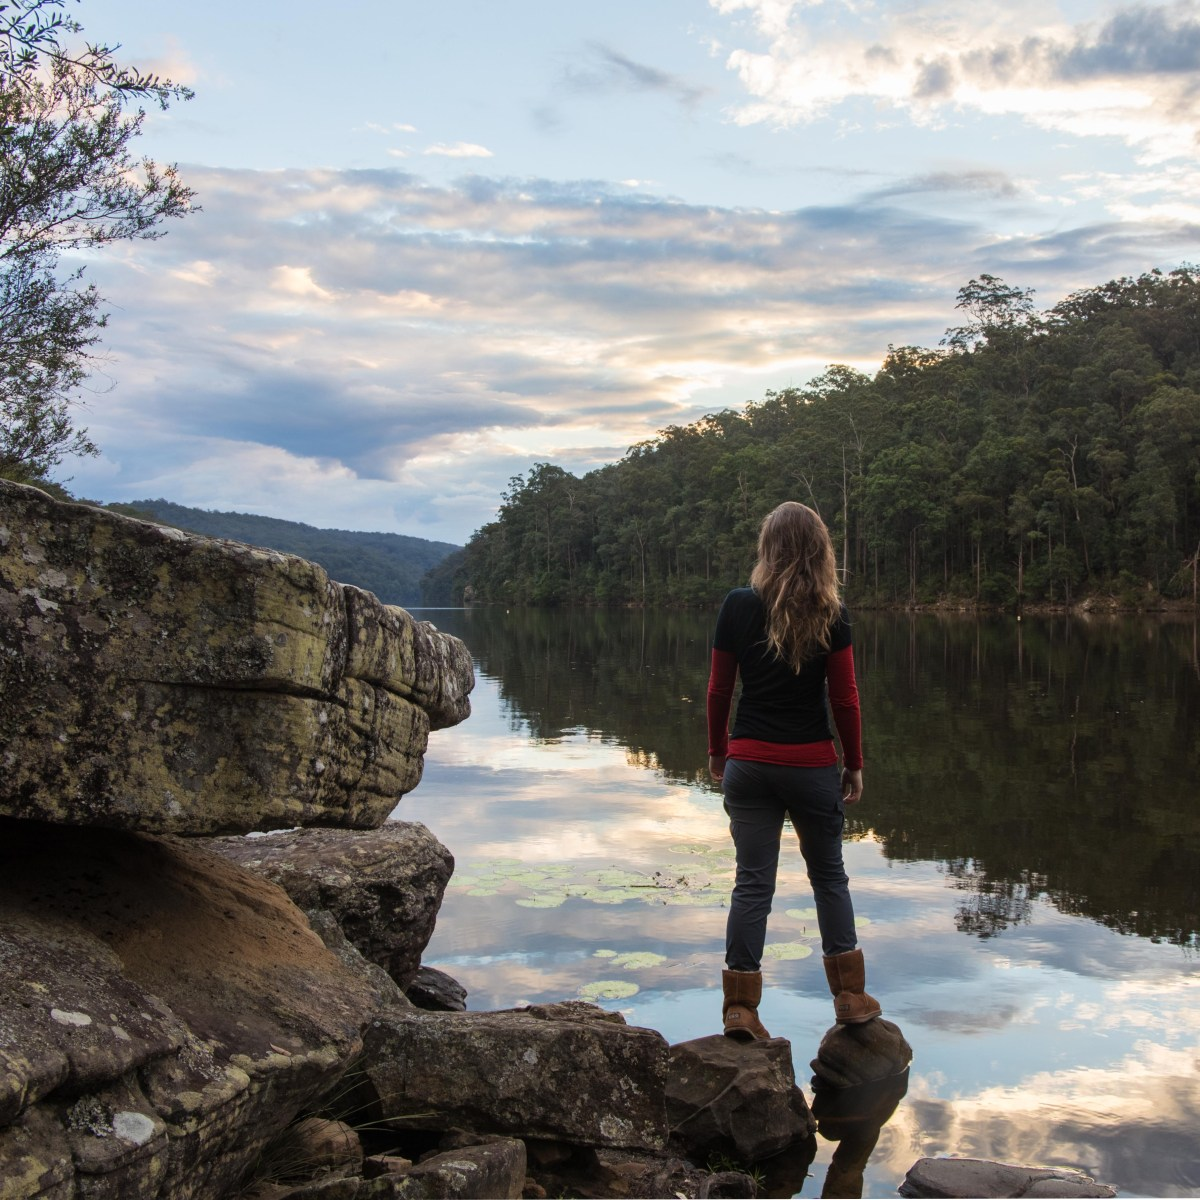 Canoeing Lake Yarrunga, Kangaroo Valley, NSW, person, glassy, lake